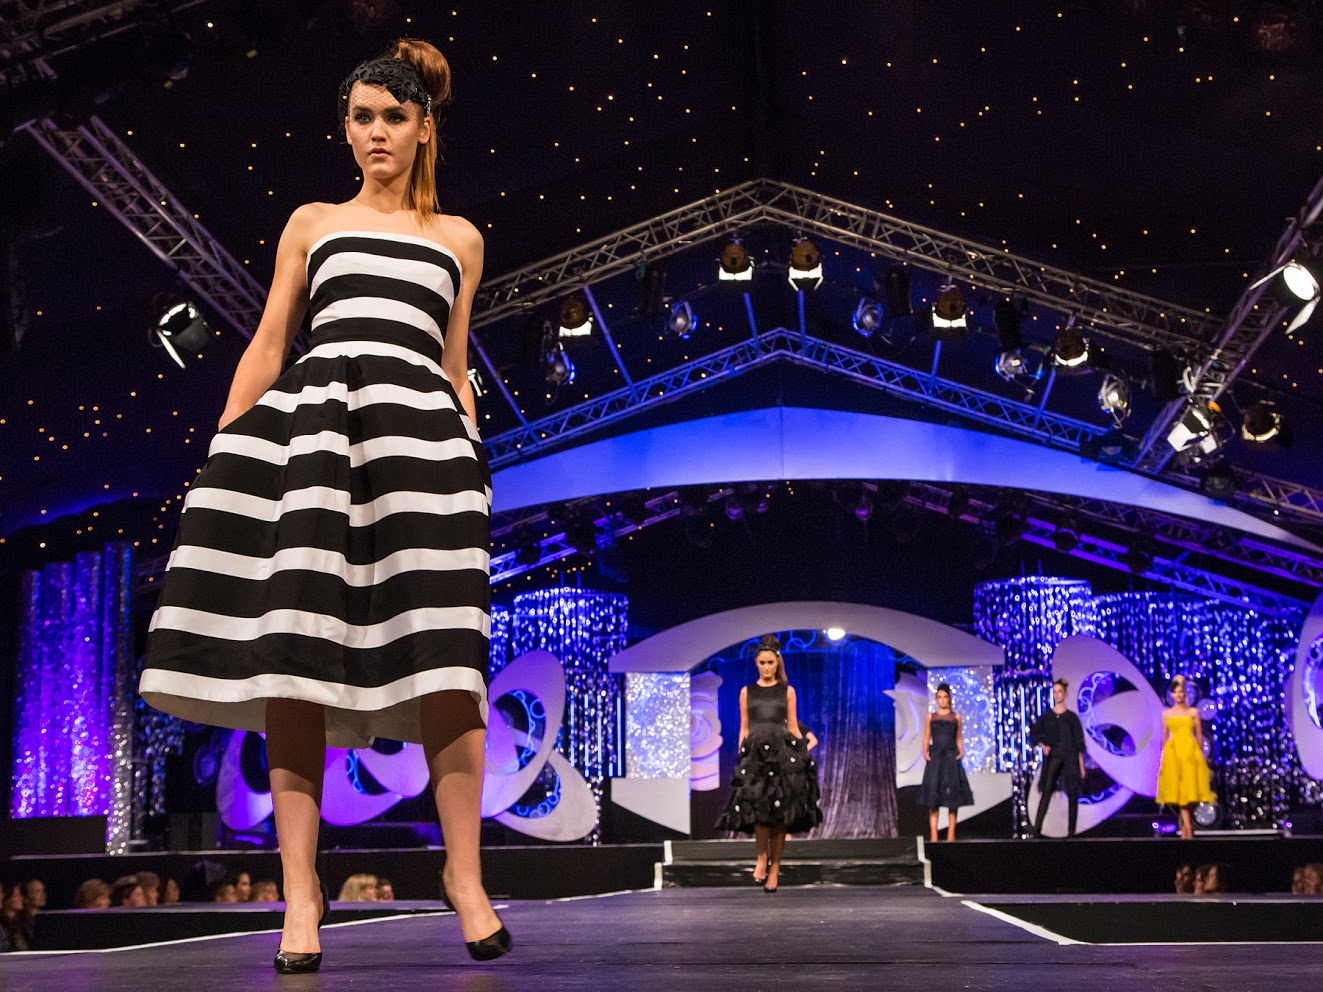 dolf_patijn_rose_of_tralee_fashion_16082015_0642